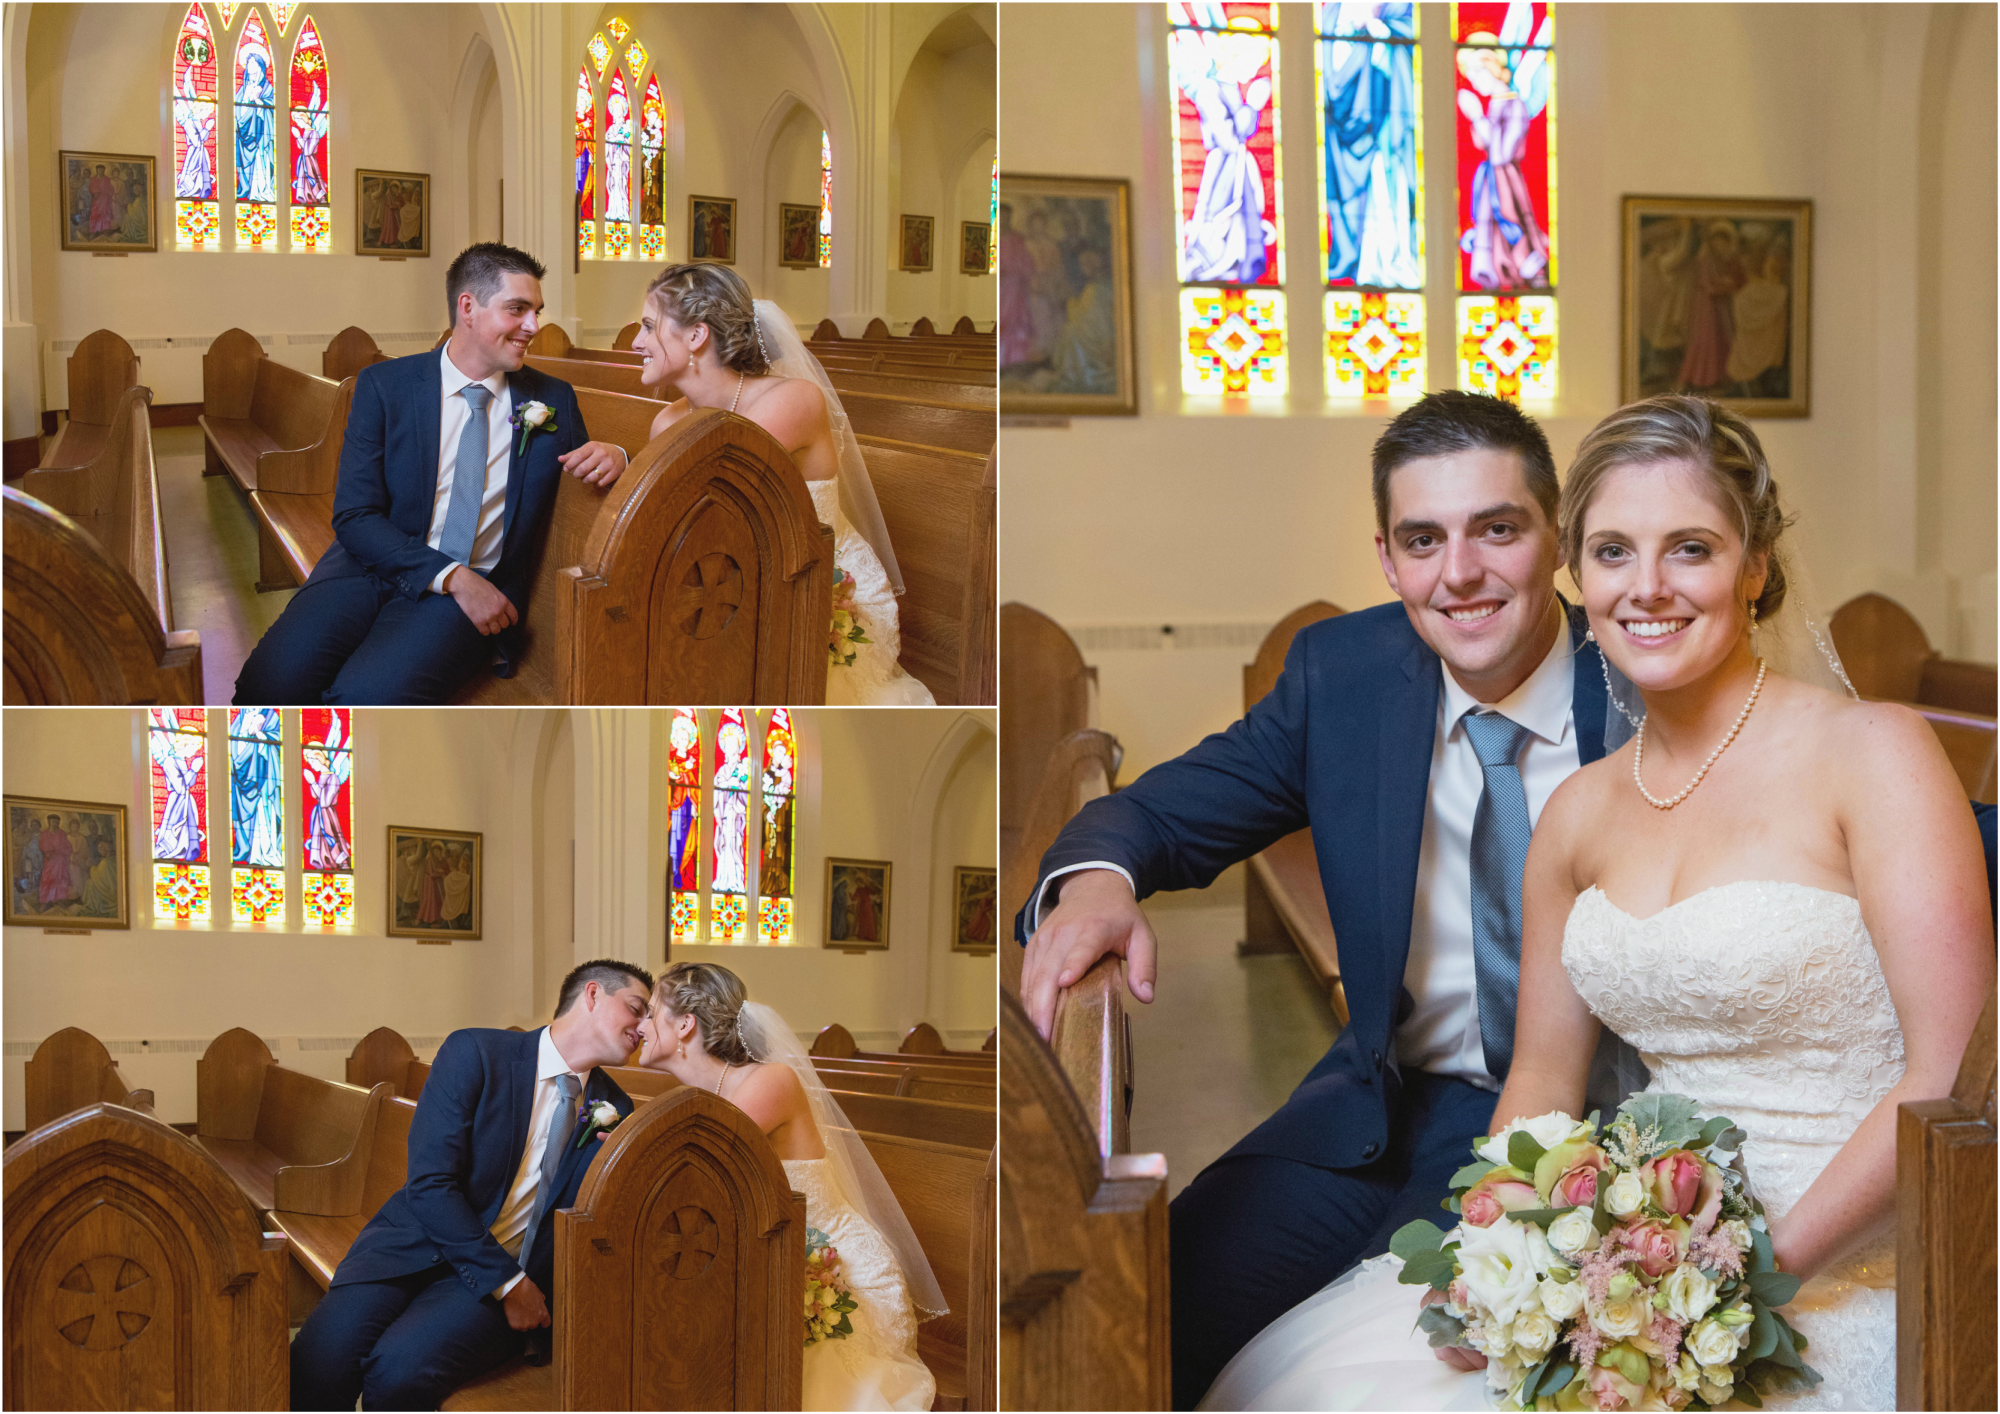 st_patricks_church_wedding_13.png